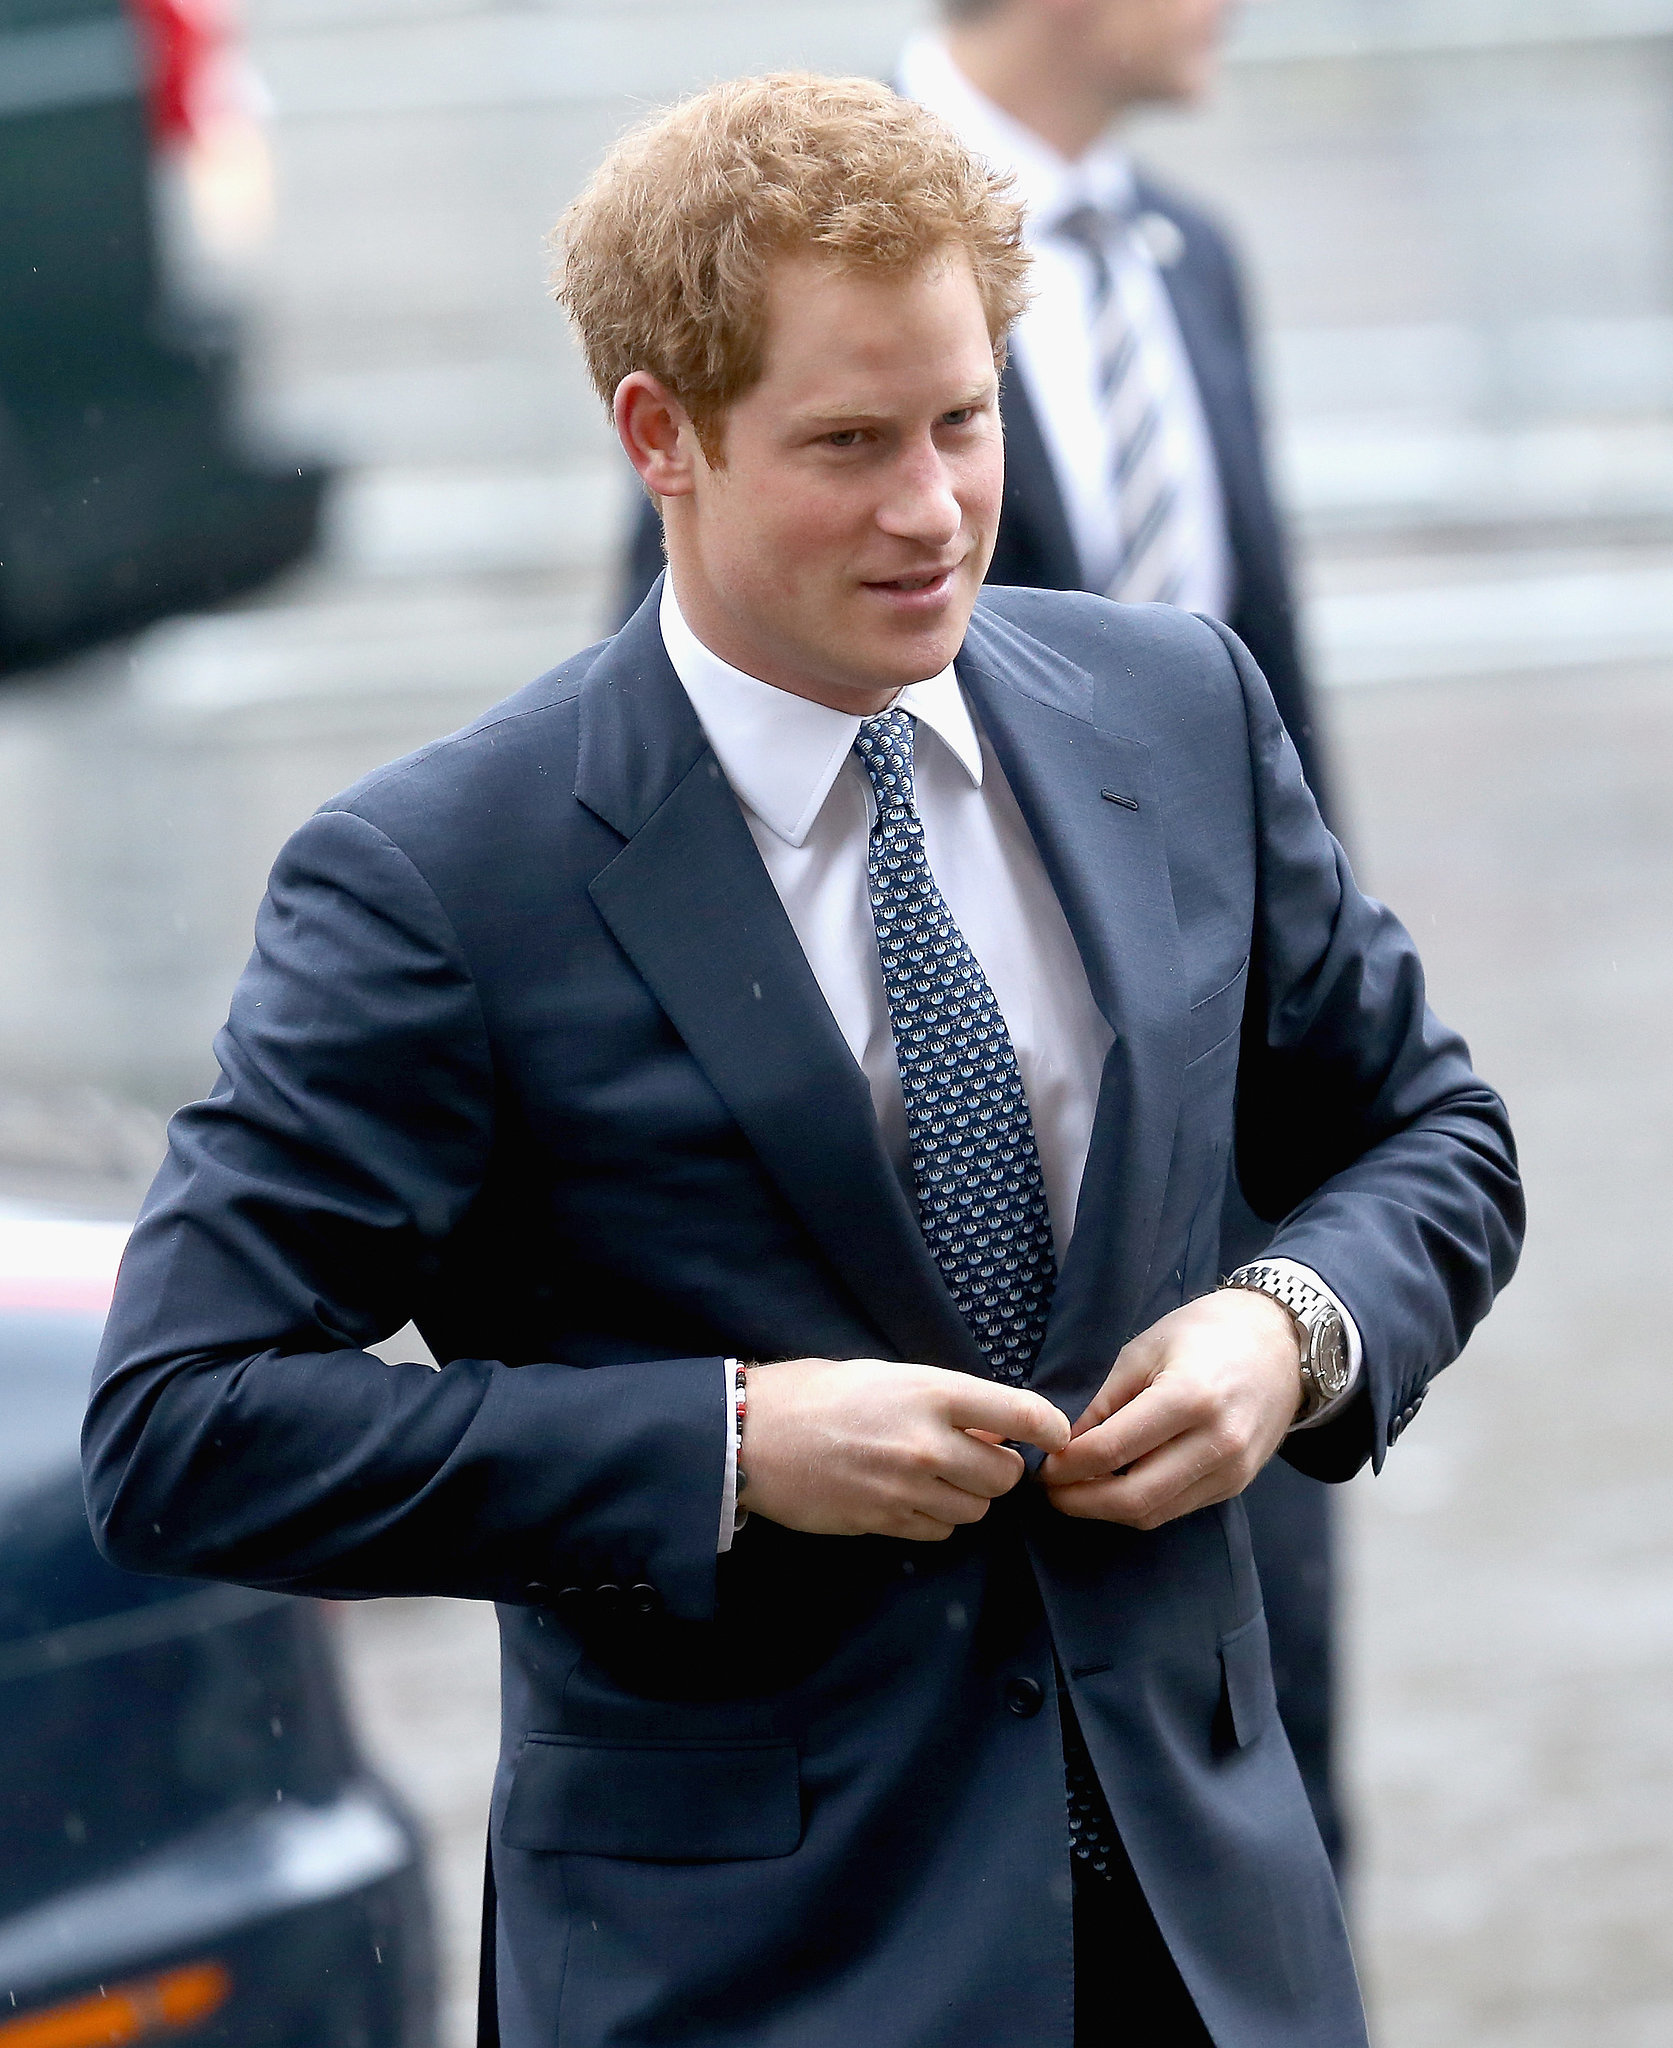 Prince Harry Represented The British Royal Family At The